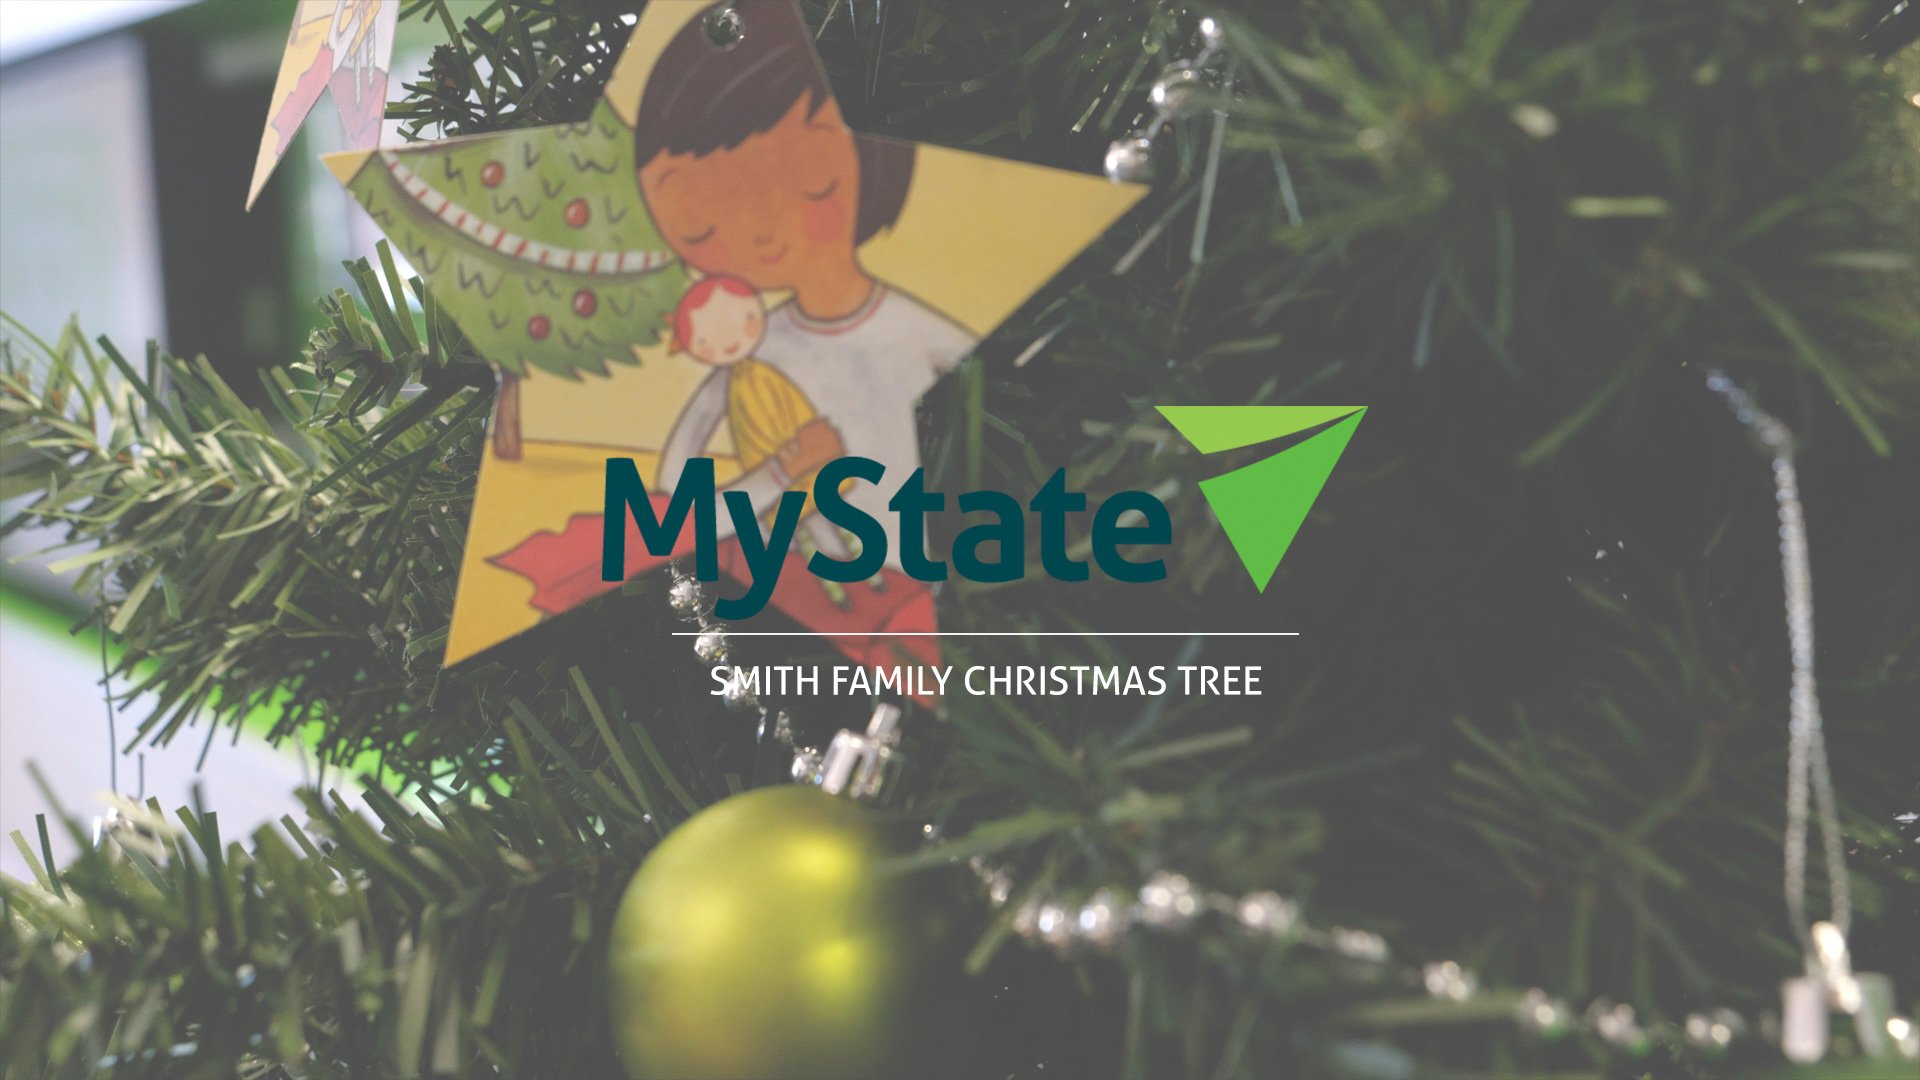 placing a star on the tree